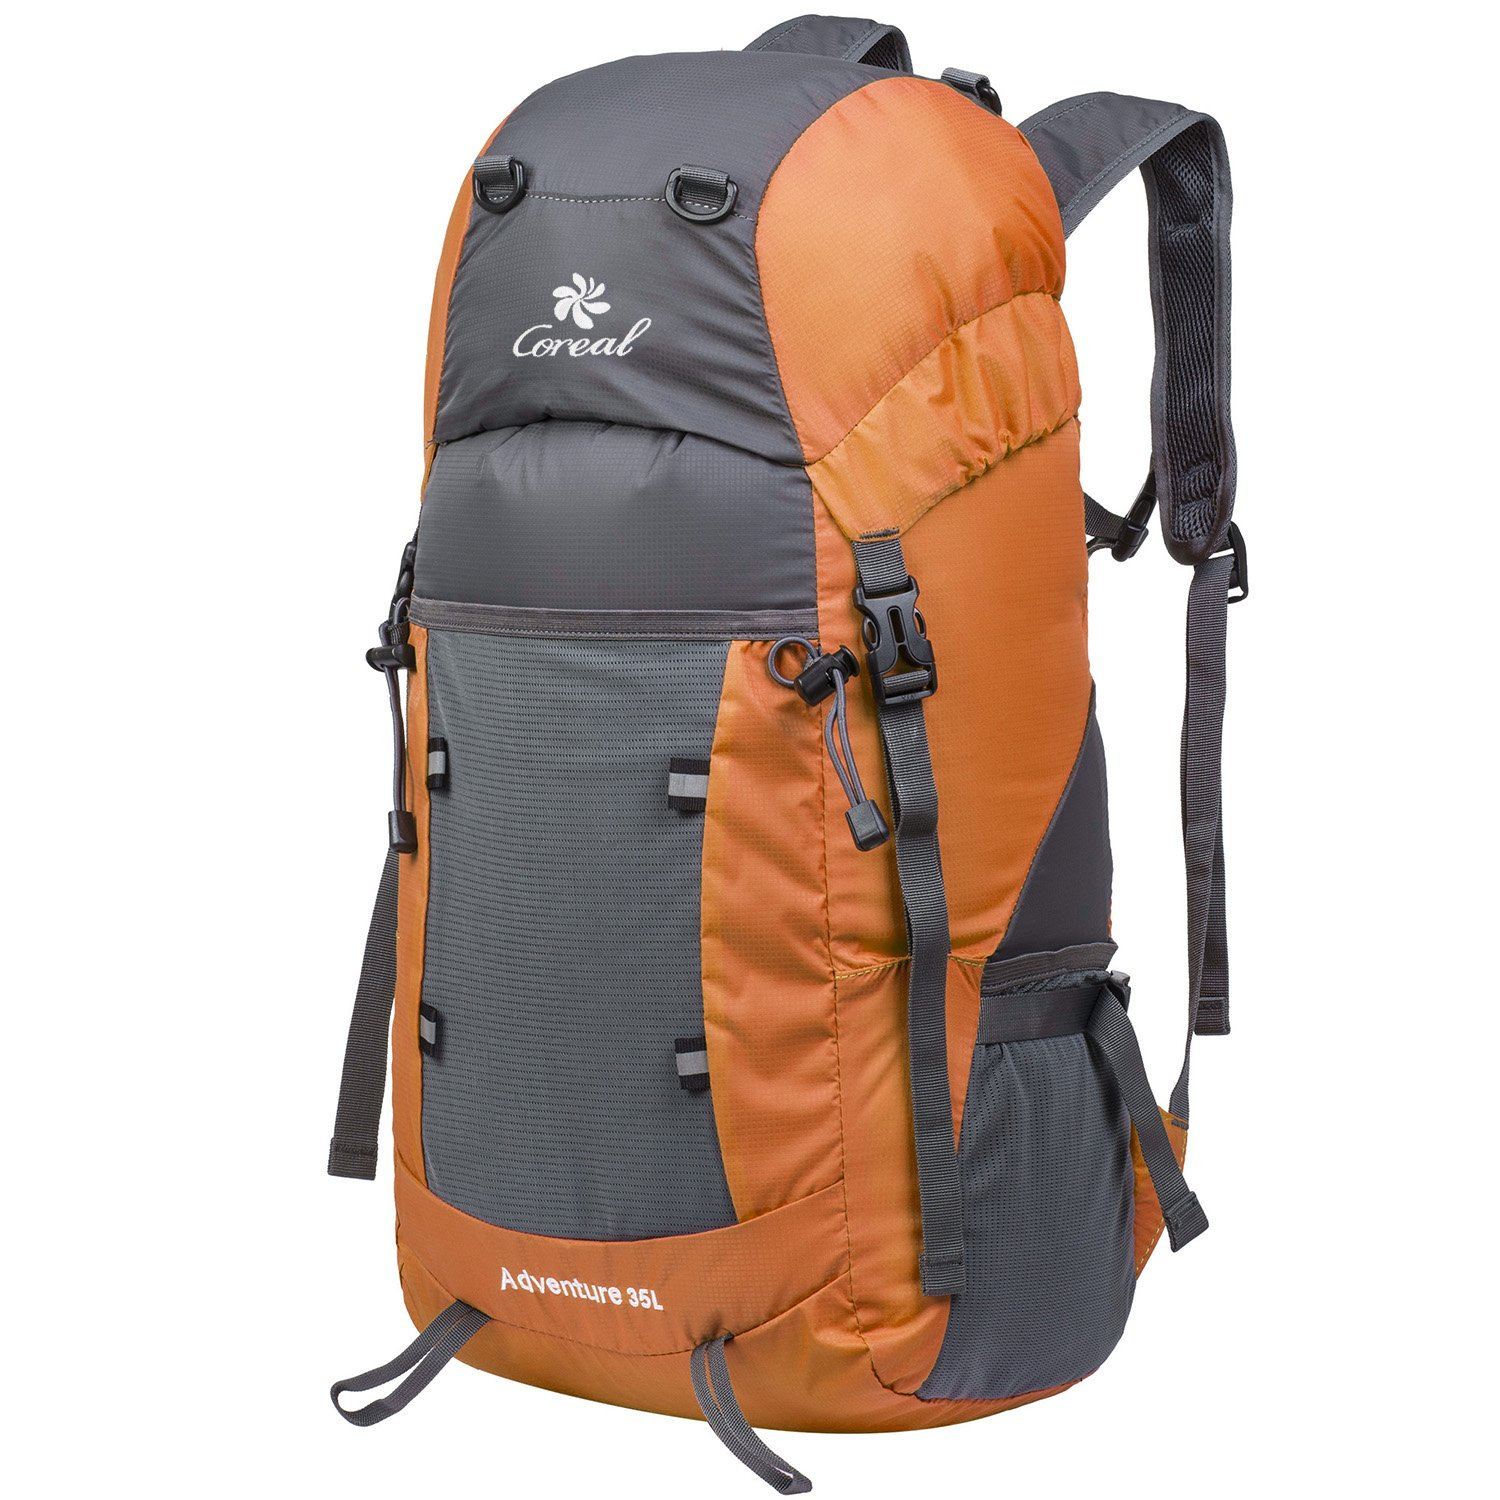 Top 10 Best Hiking Backpack (2020 Reviews & Buying Guide) 9